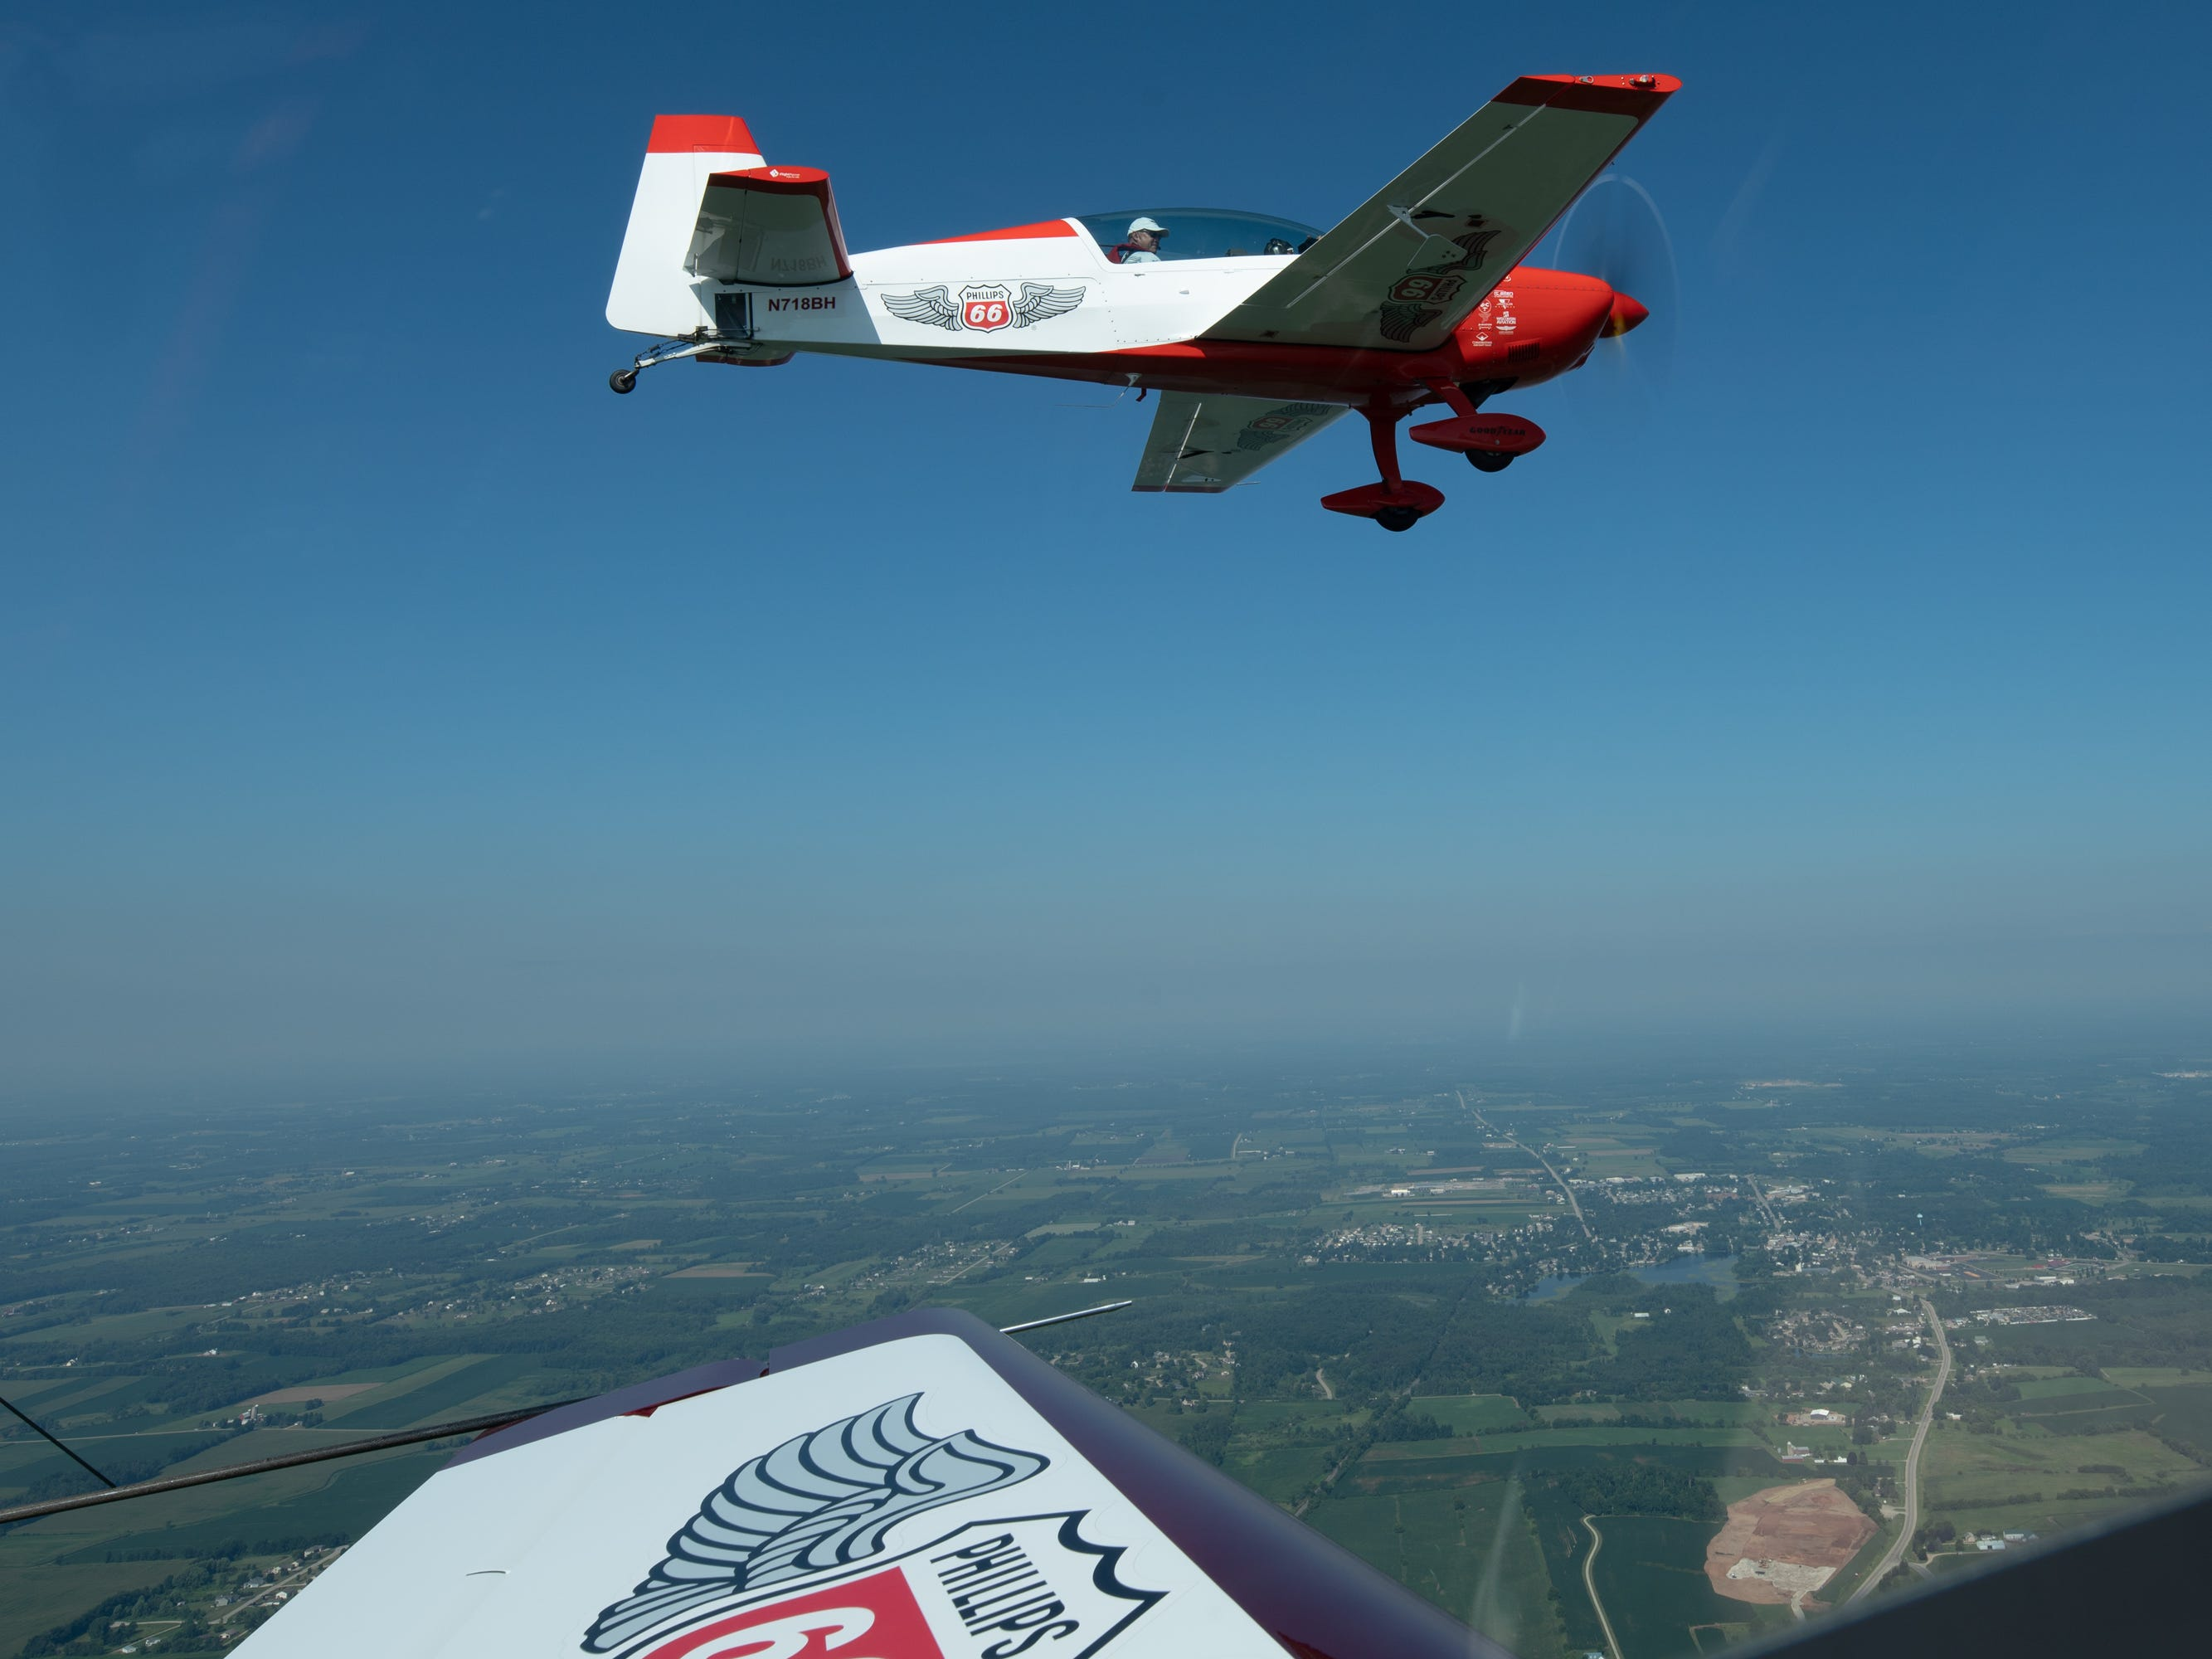 The Phillips 66 Aerostars practice aerobatics Tuesday, July 24, 2018, north of Oshkosh. The four-ship team uses Extra aircraft for its performances.